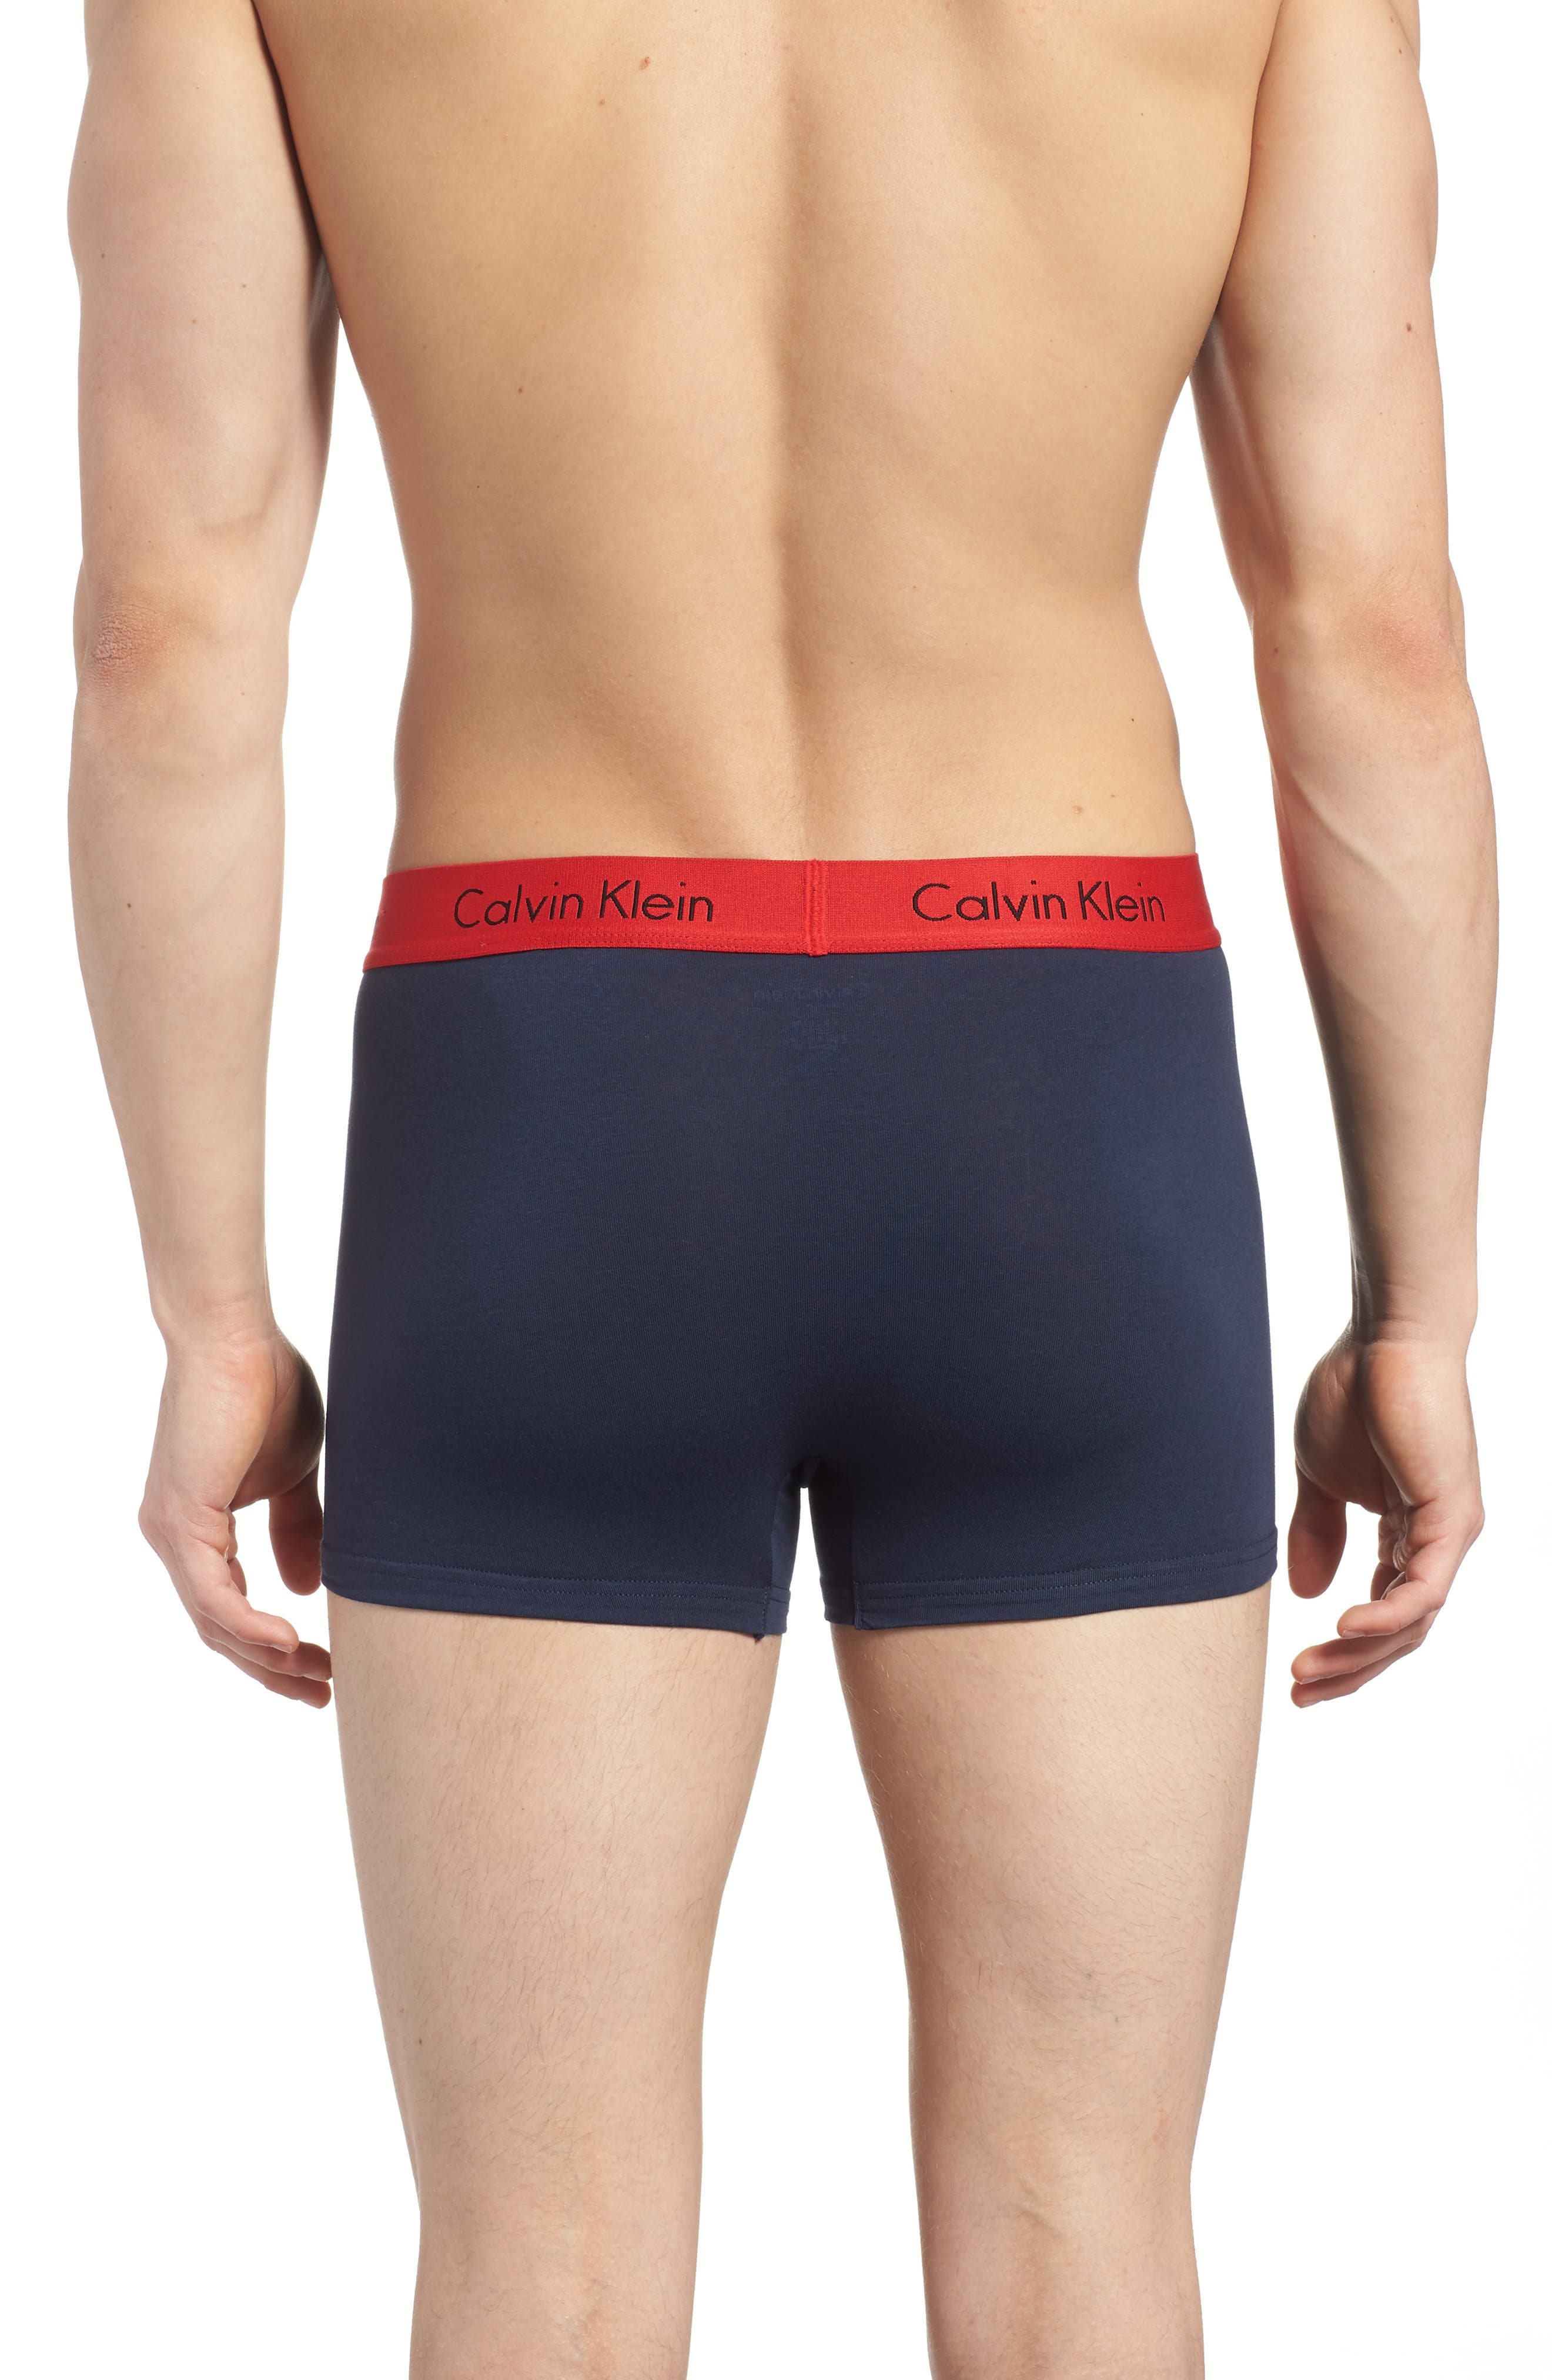 3-Pack Cotton Trunks,                             Alternate thumbnail 3, color,                             Black/ Grey/ Blue/ Red Band